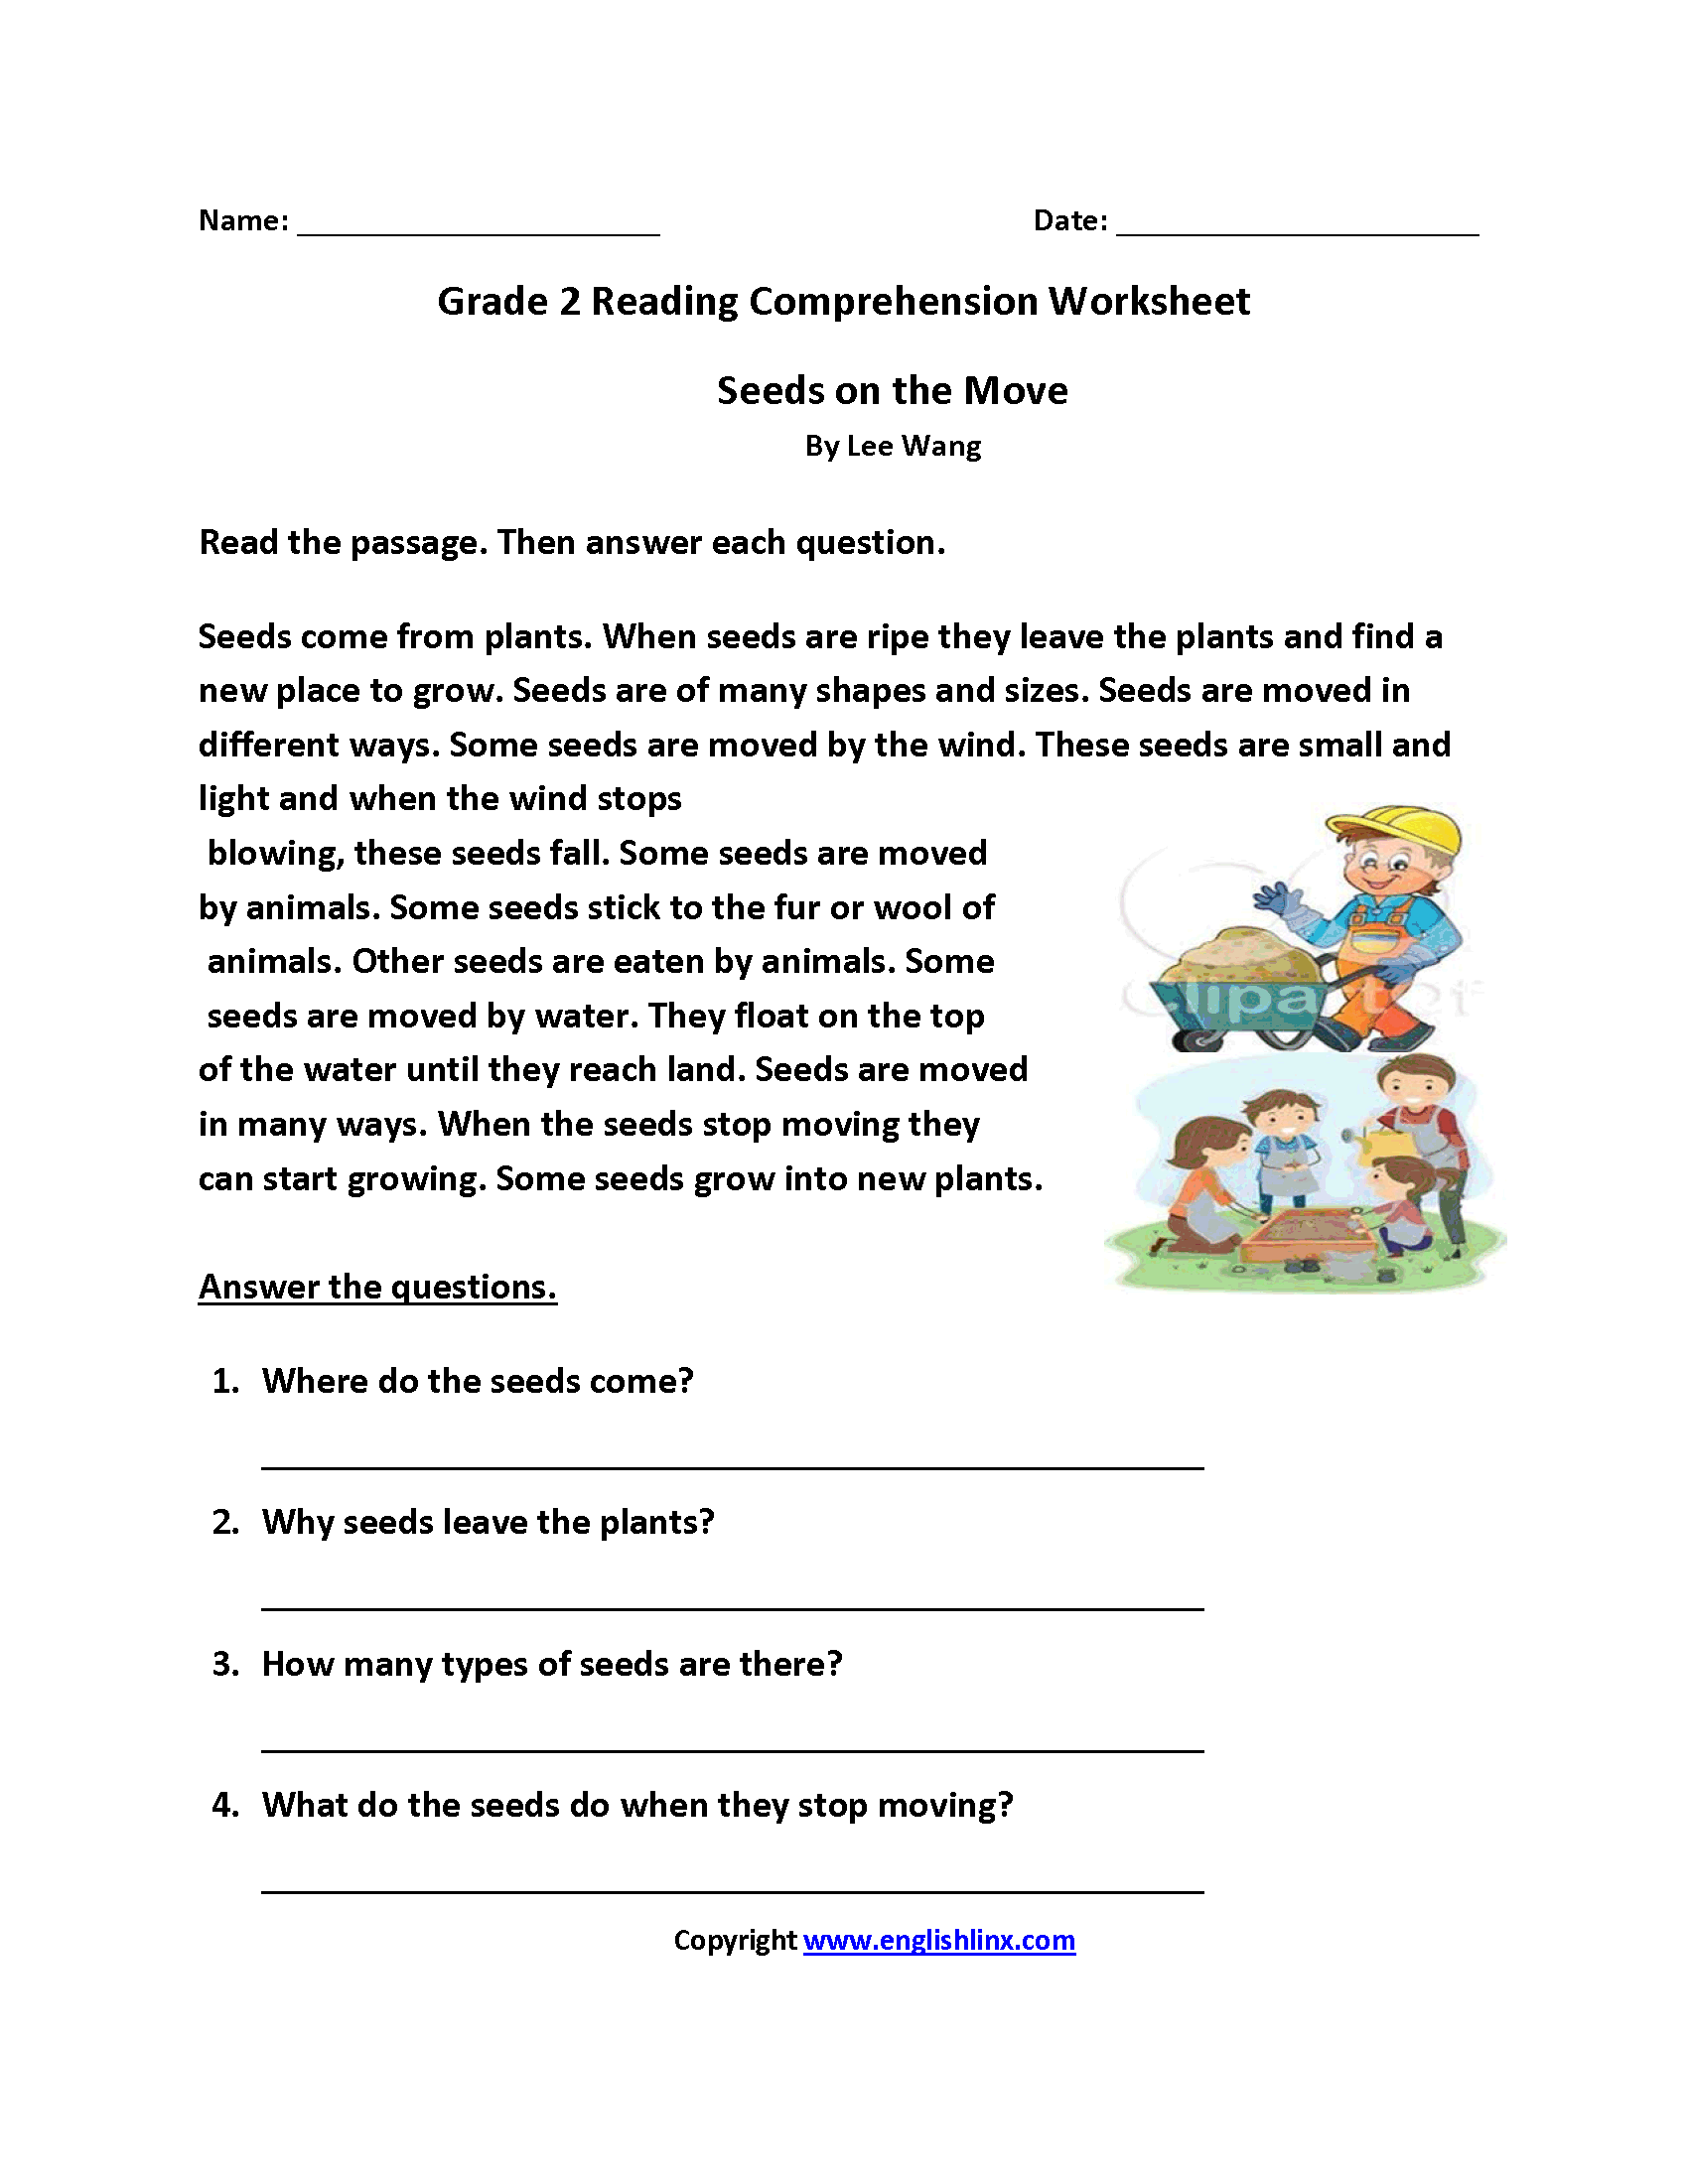 Seeds on Move Second Grade Reading Worksheets Reading